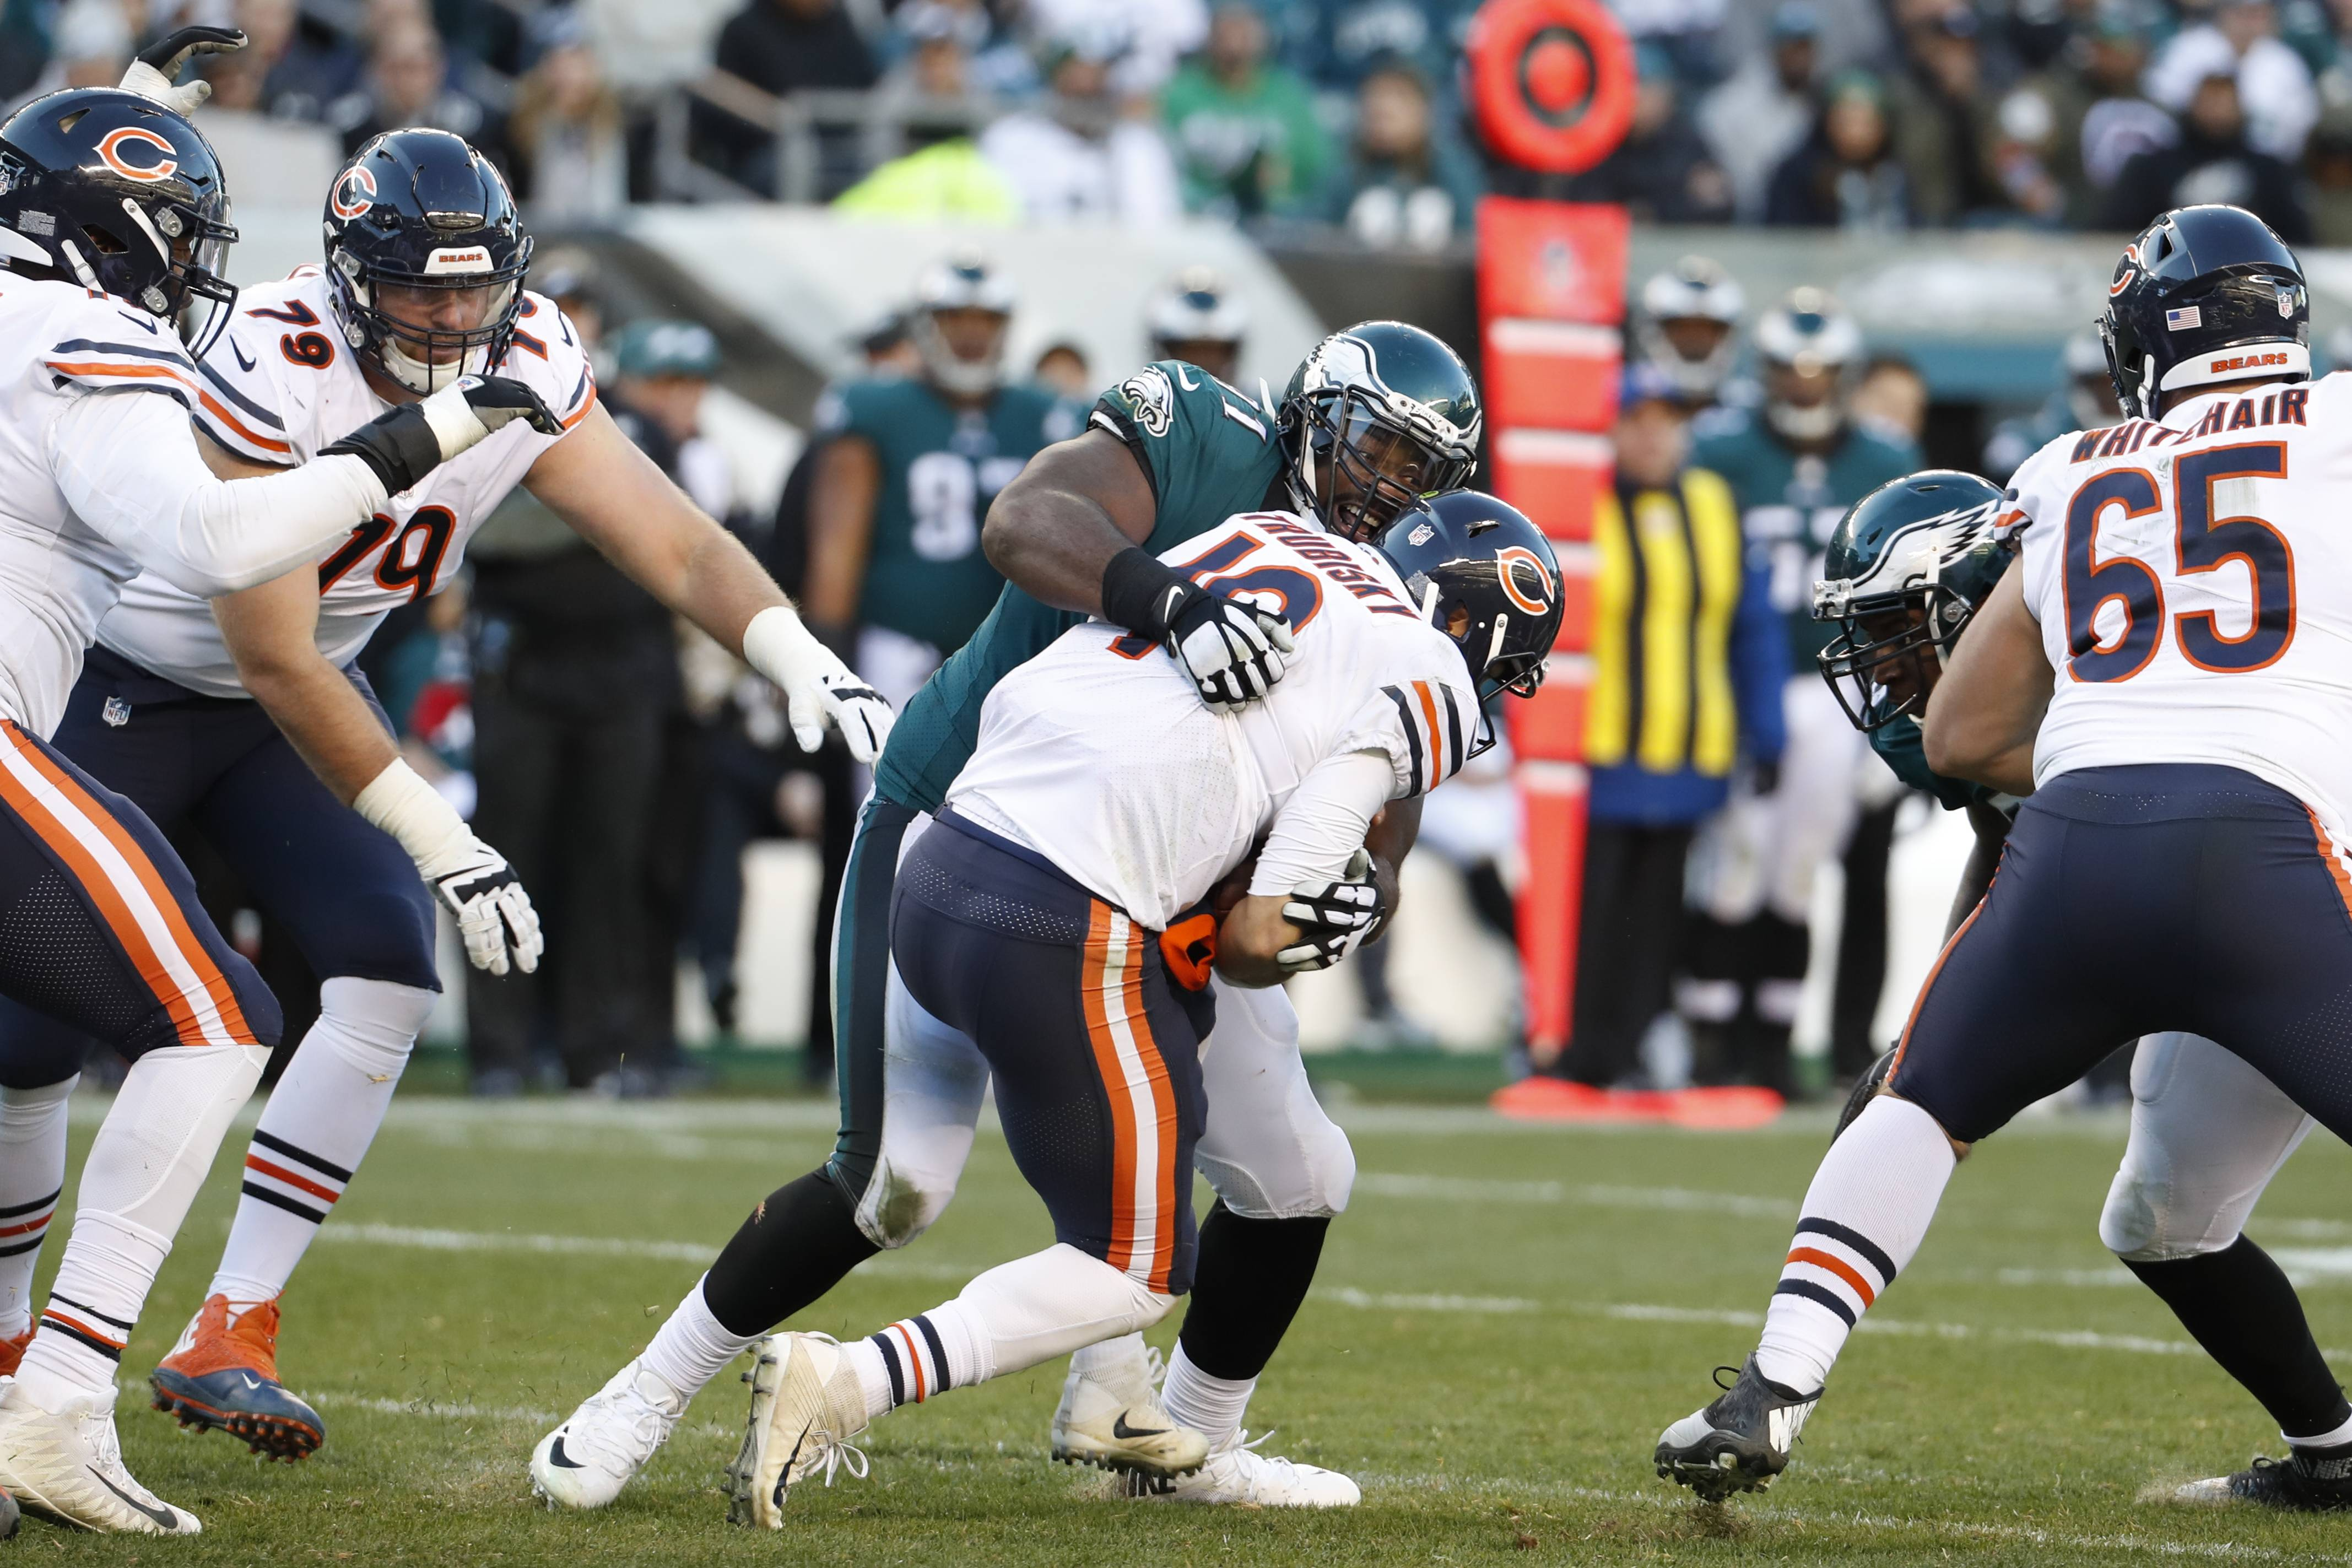 Philadelphia Eagles' Fletcher Cox (91) tackled Chicago Bears' Mitchell Trubisky (10) during the second half of an NFL football game, Sunday, Nov. 26, 2017, in Philadelphia. (AP Photo/Chris Szagola)